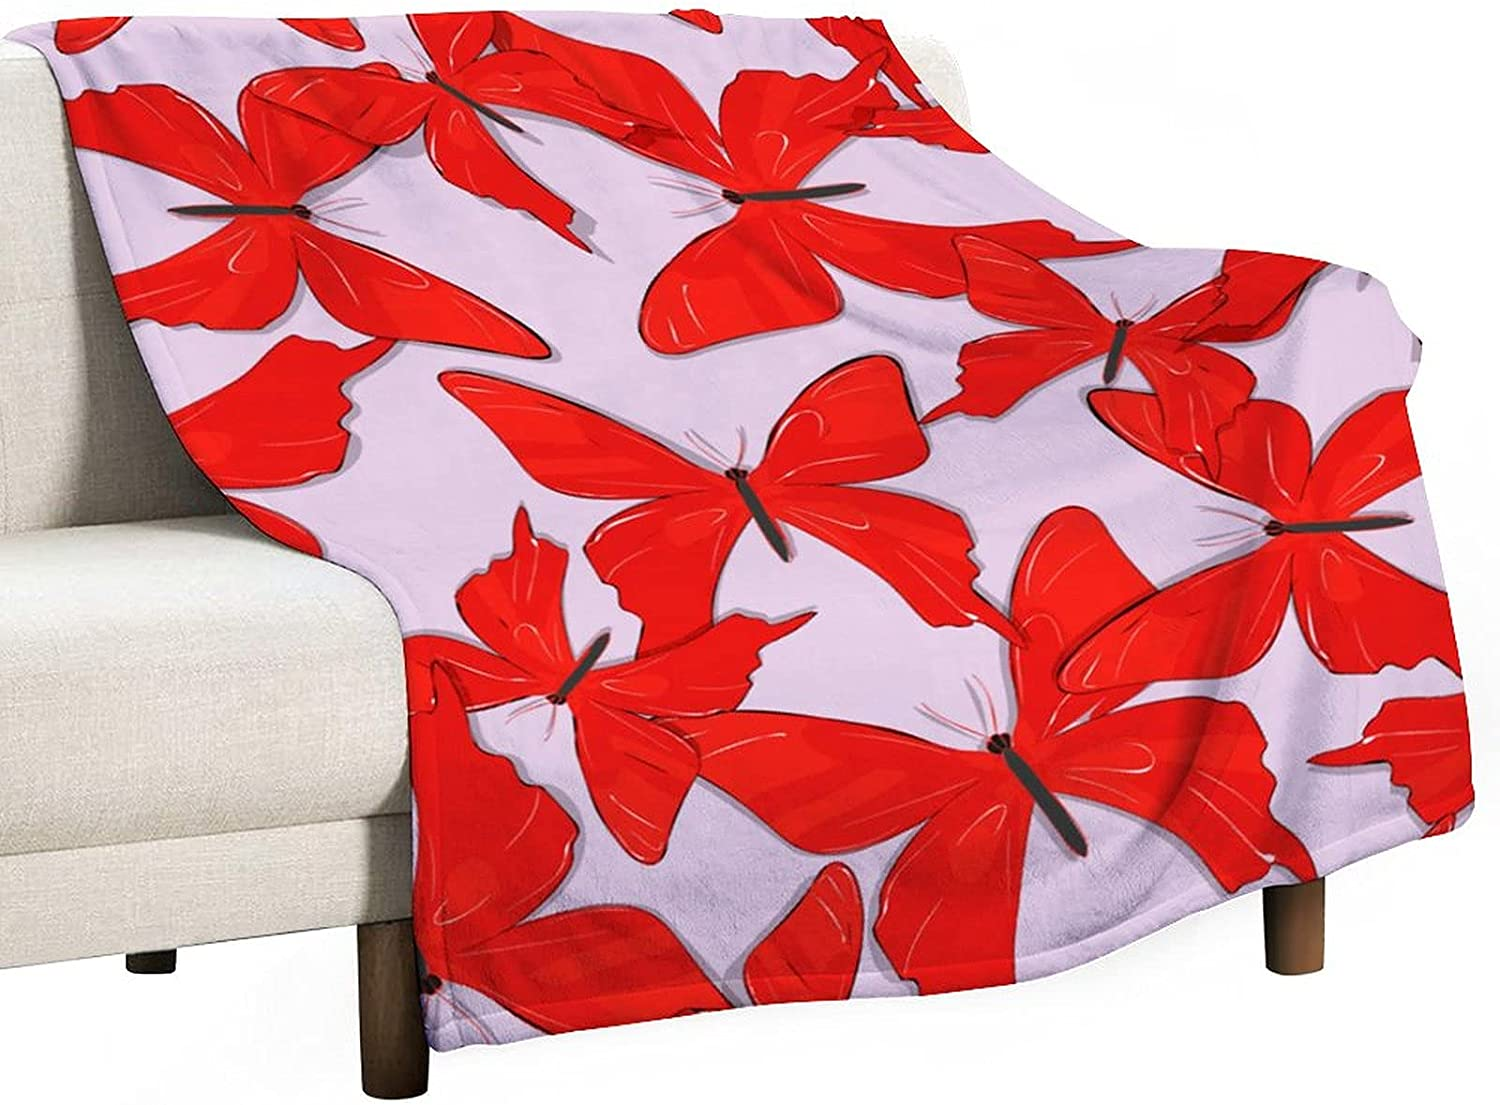 Fashion Red Butterfly Blanket Soft Cozy Lightweight National uniform free shipping Throw Blanke Flannel